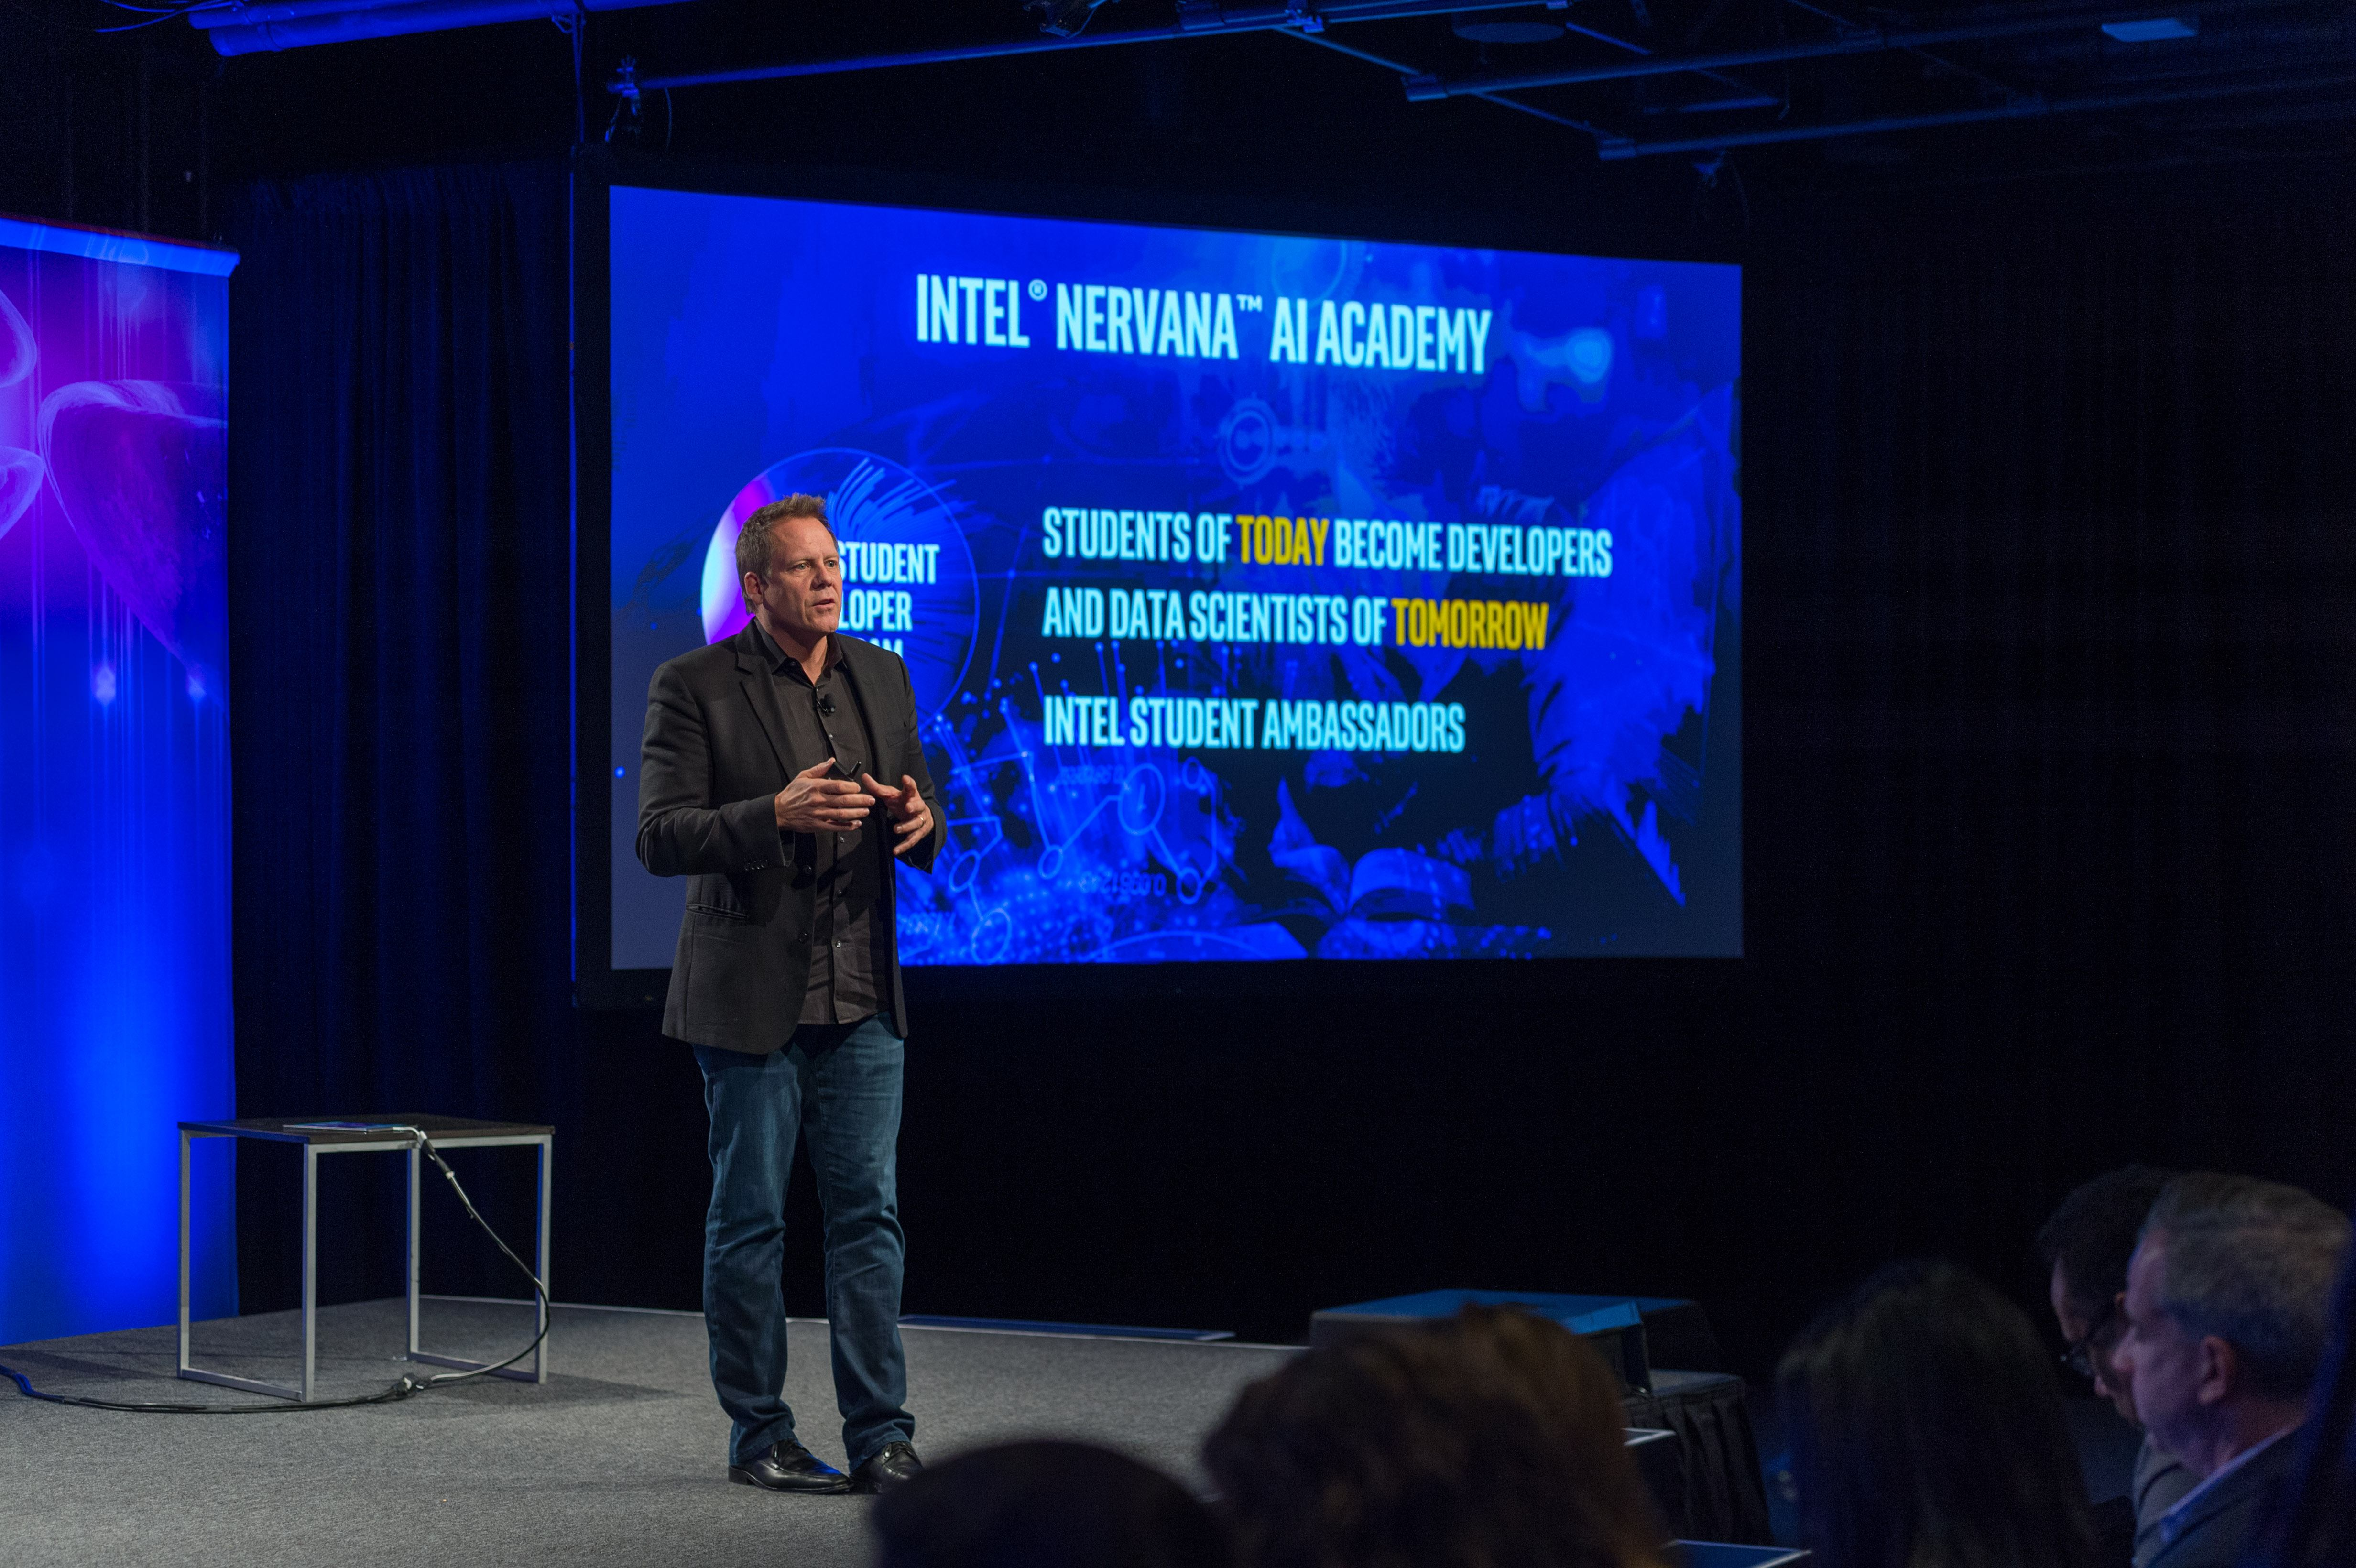 Intel's Doug Fisher introduces the Intel Nervana AI Academy for broad developer access to training and tools